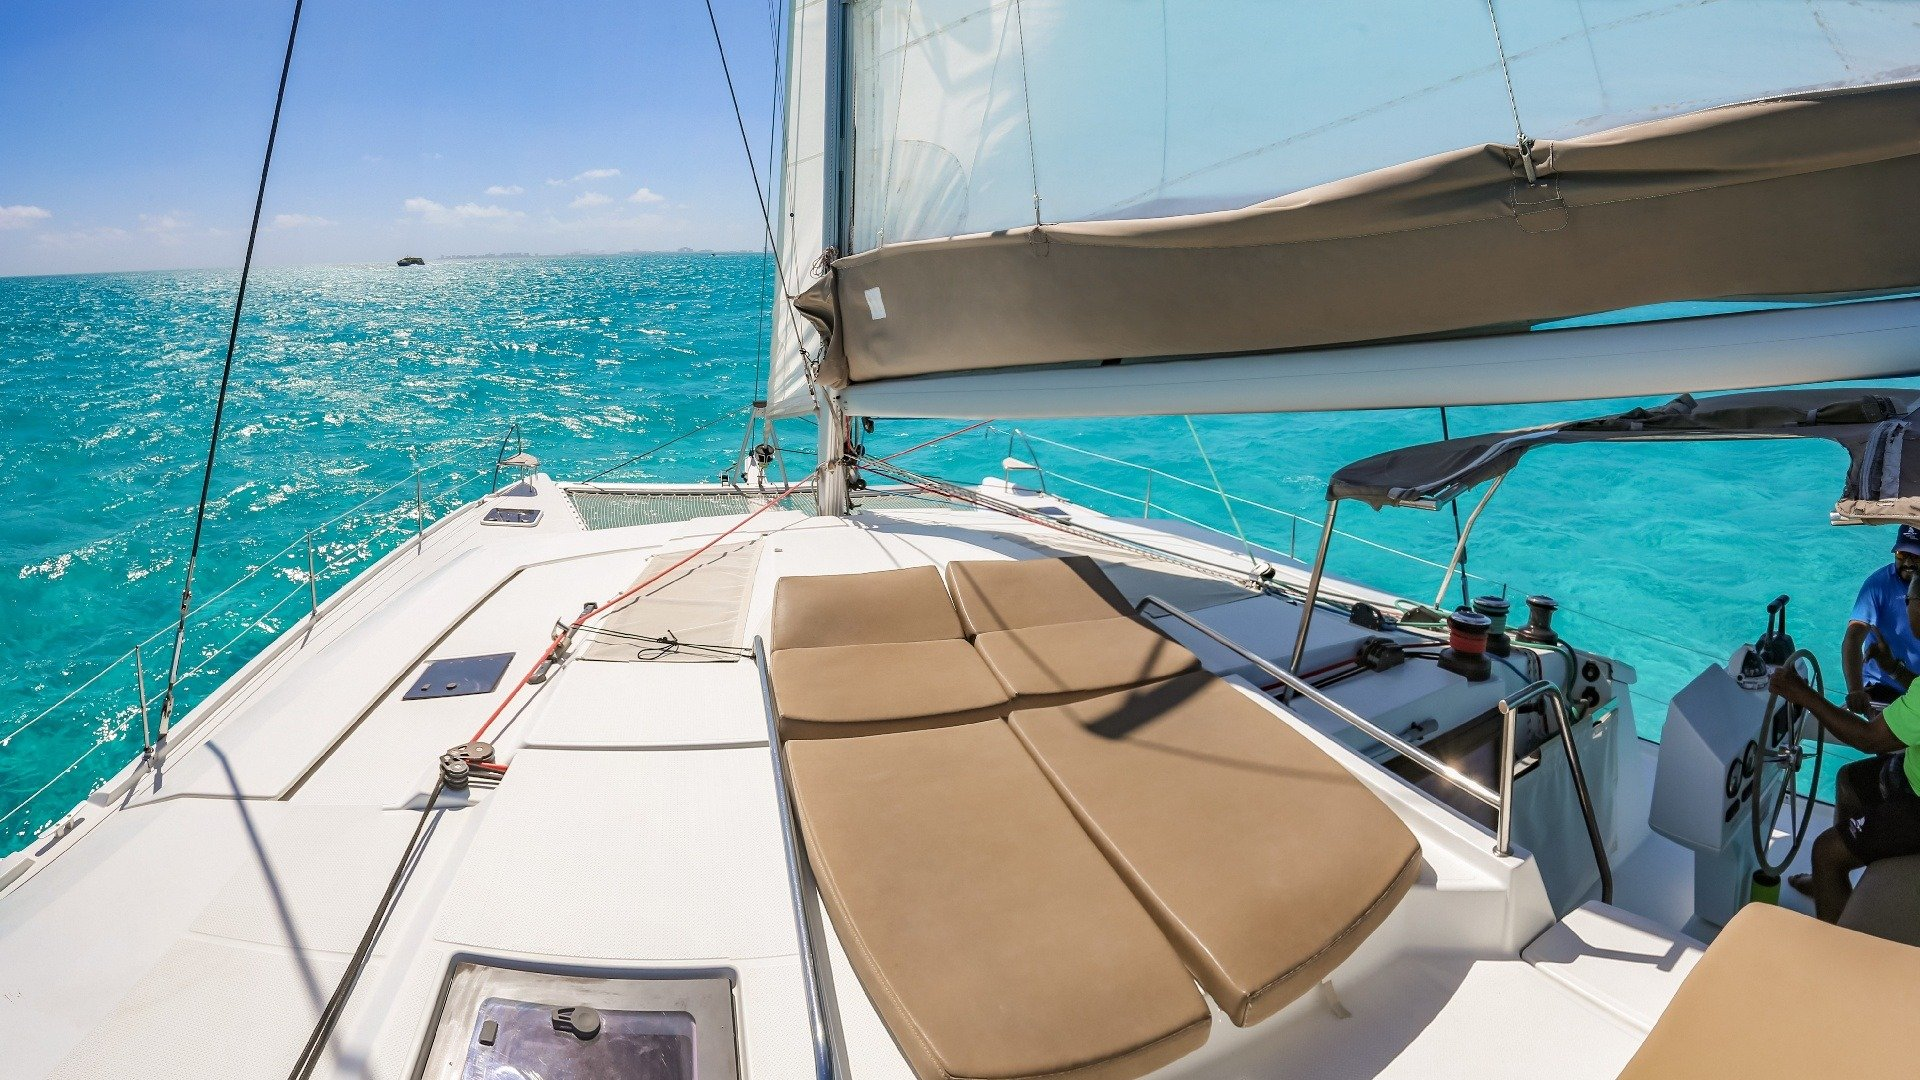 4 - LowRes - Gypse - Private tour to Isla Mujeres in catamaran - Cancun Sailing